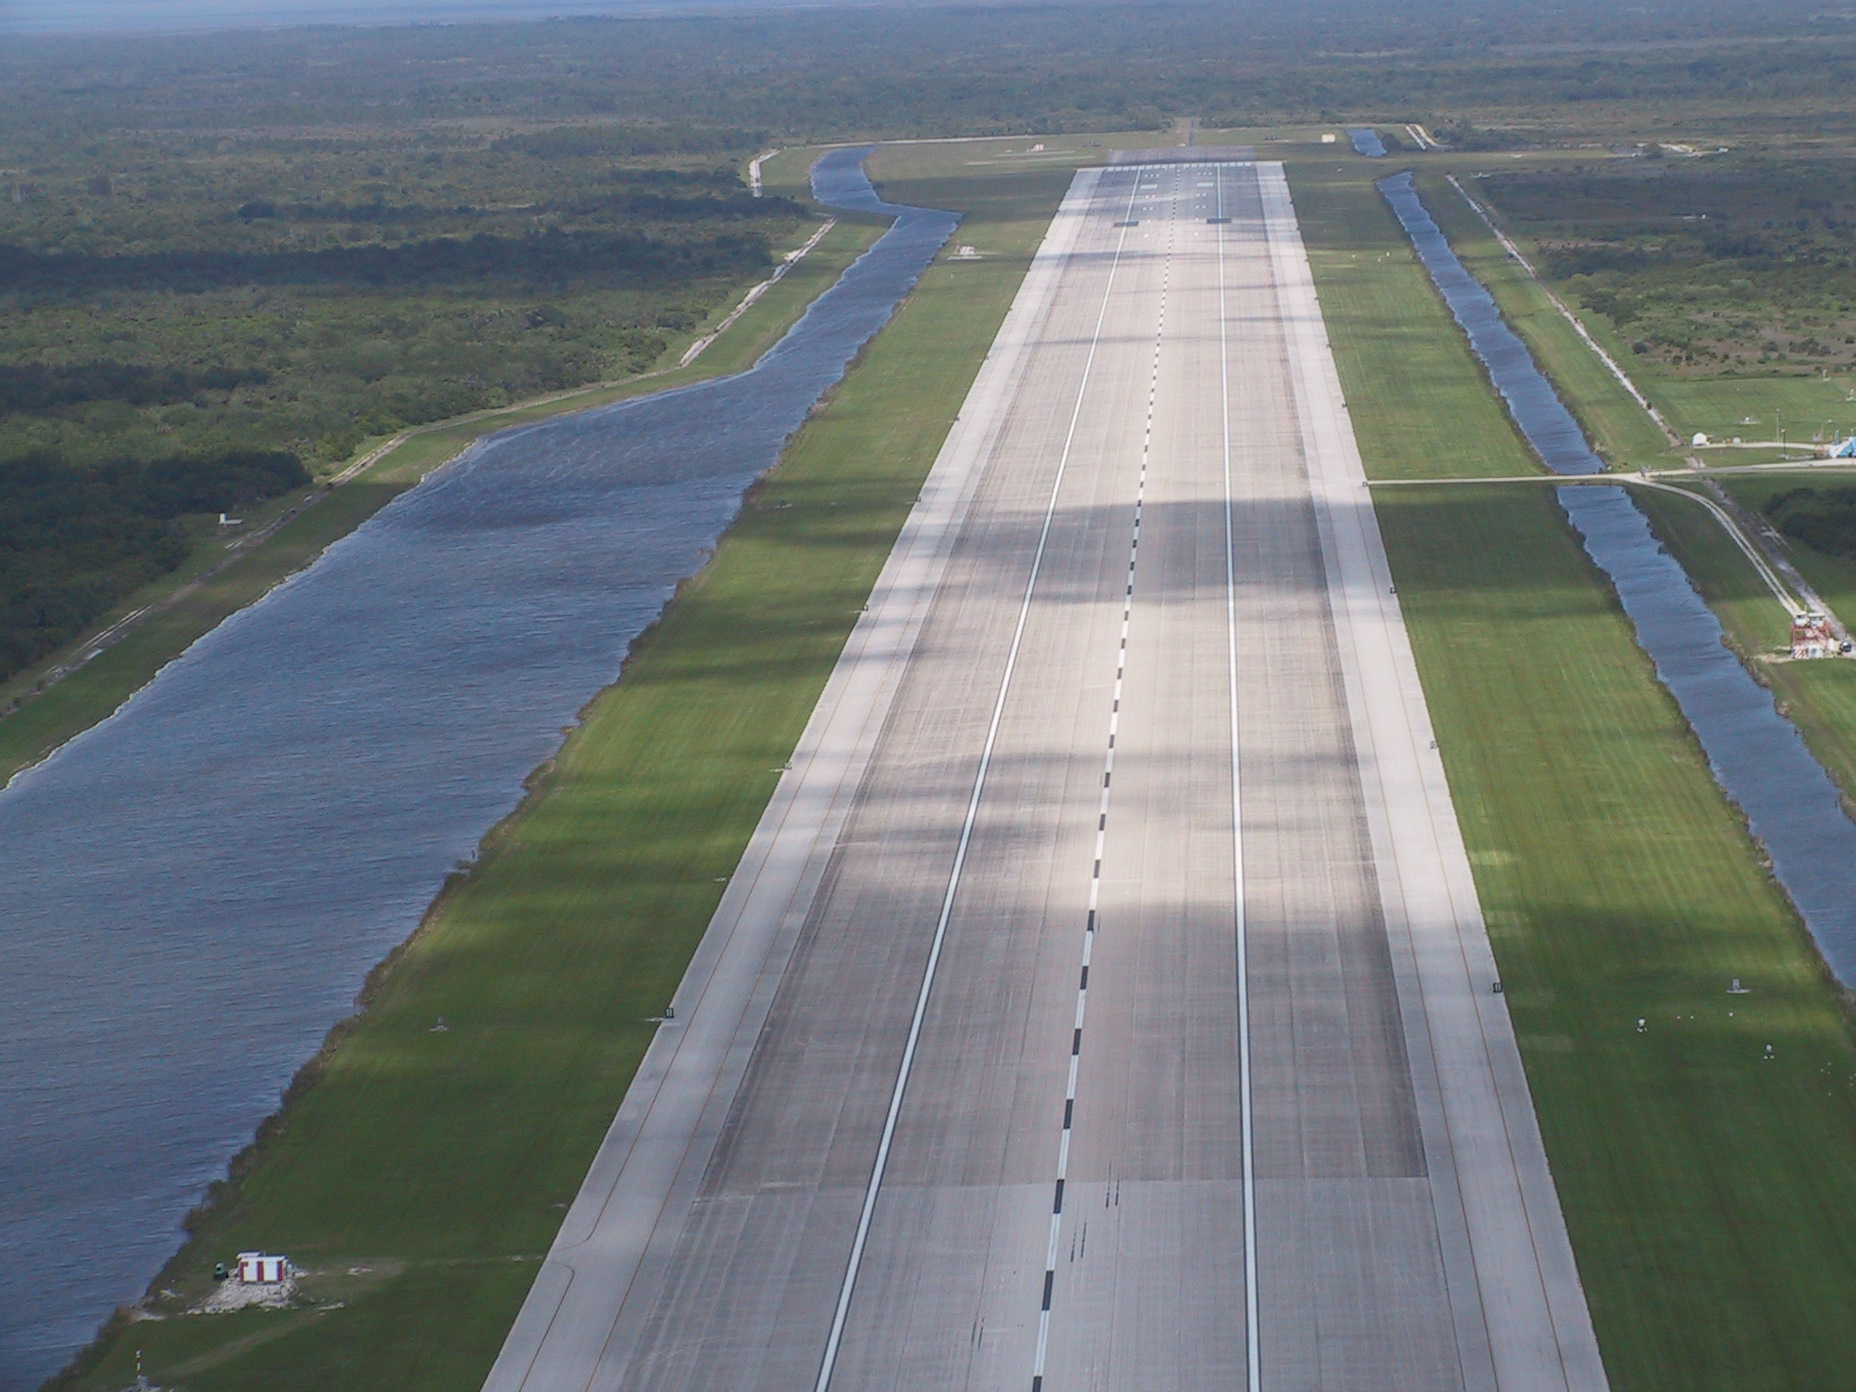 nasa shuttle facility muslim Complete aeronautical information about nasa shuttle landing facility (titusville, fl, usa), including location, runways, taxiways, navaids, radio frequencies, fbo .